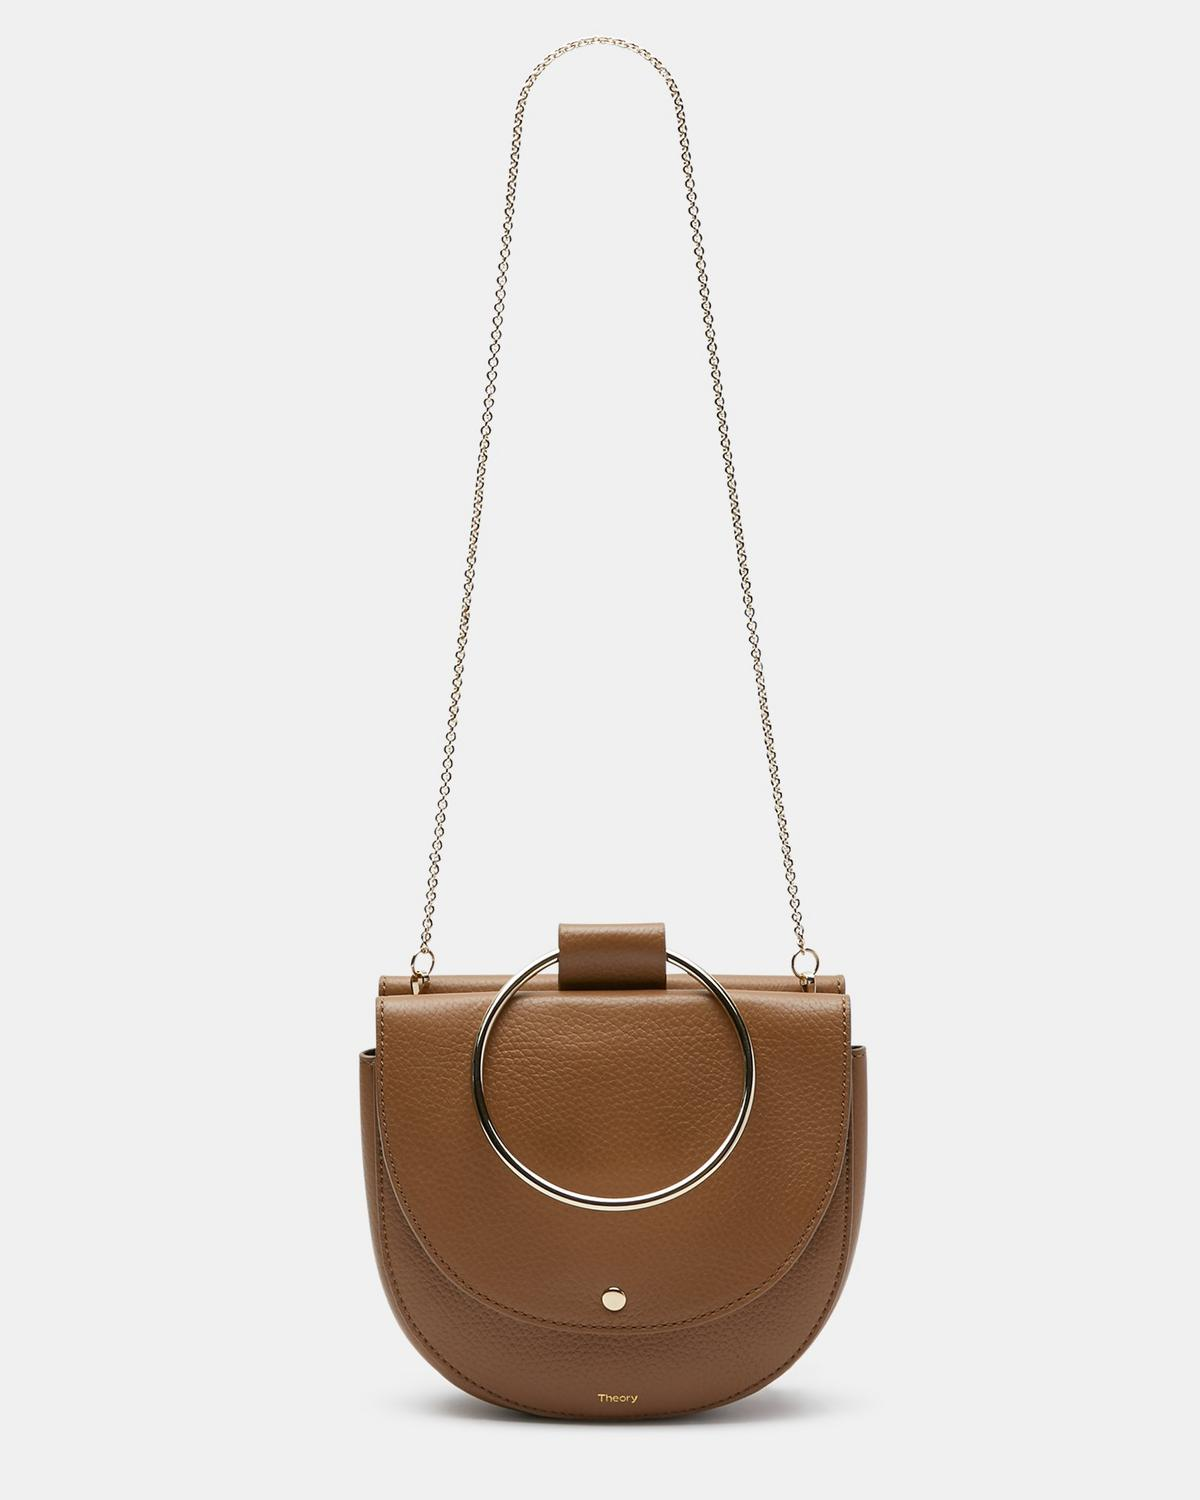 Whitney Bag in Pebble Leather